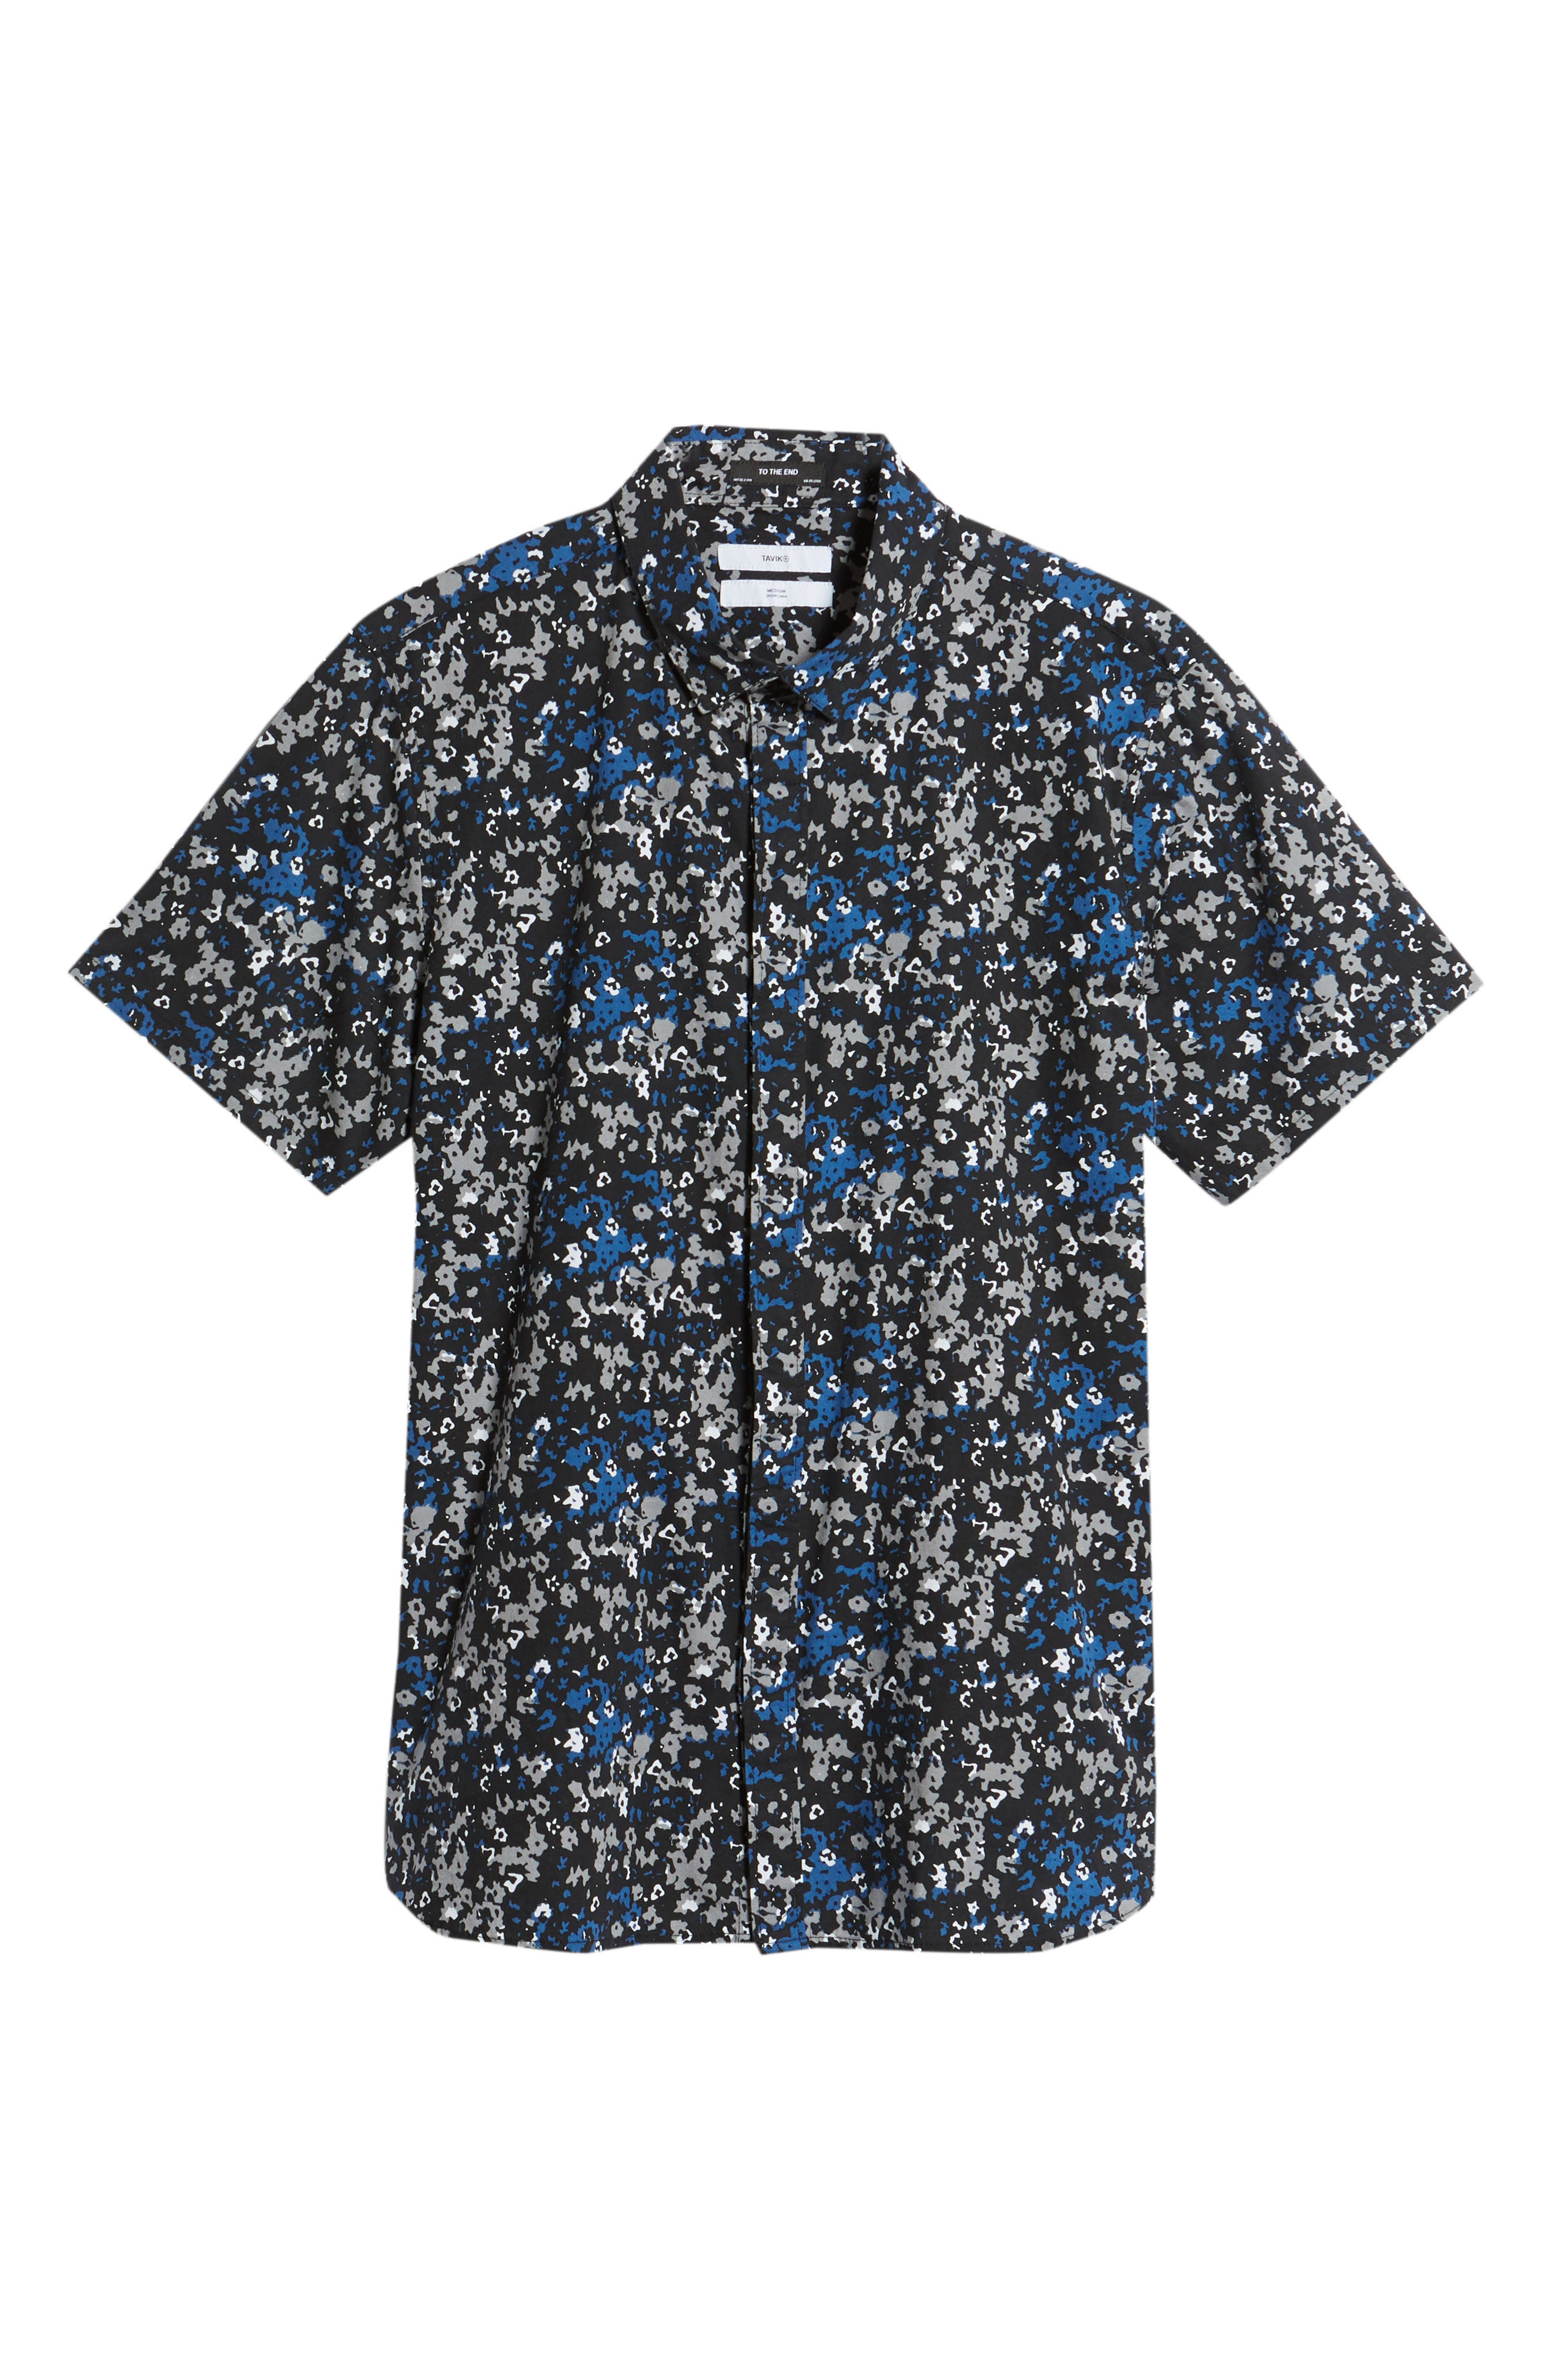 Fowler Woven Shirt,                             Alternate thumbnail 6, color,                             Black Micro Floral